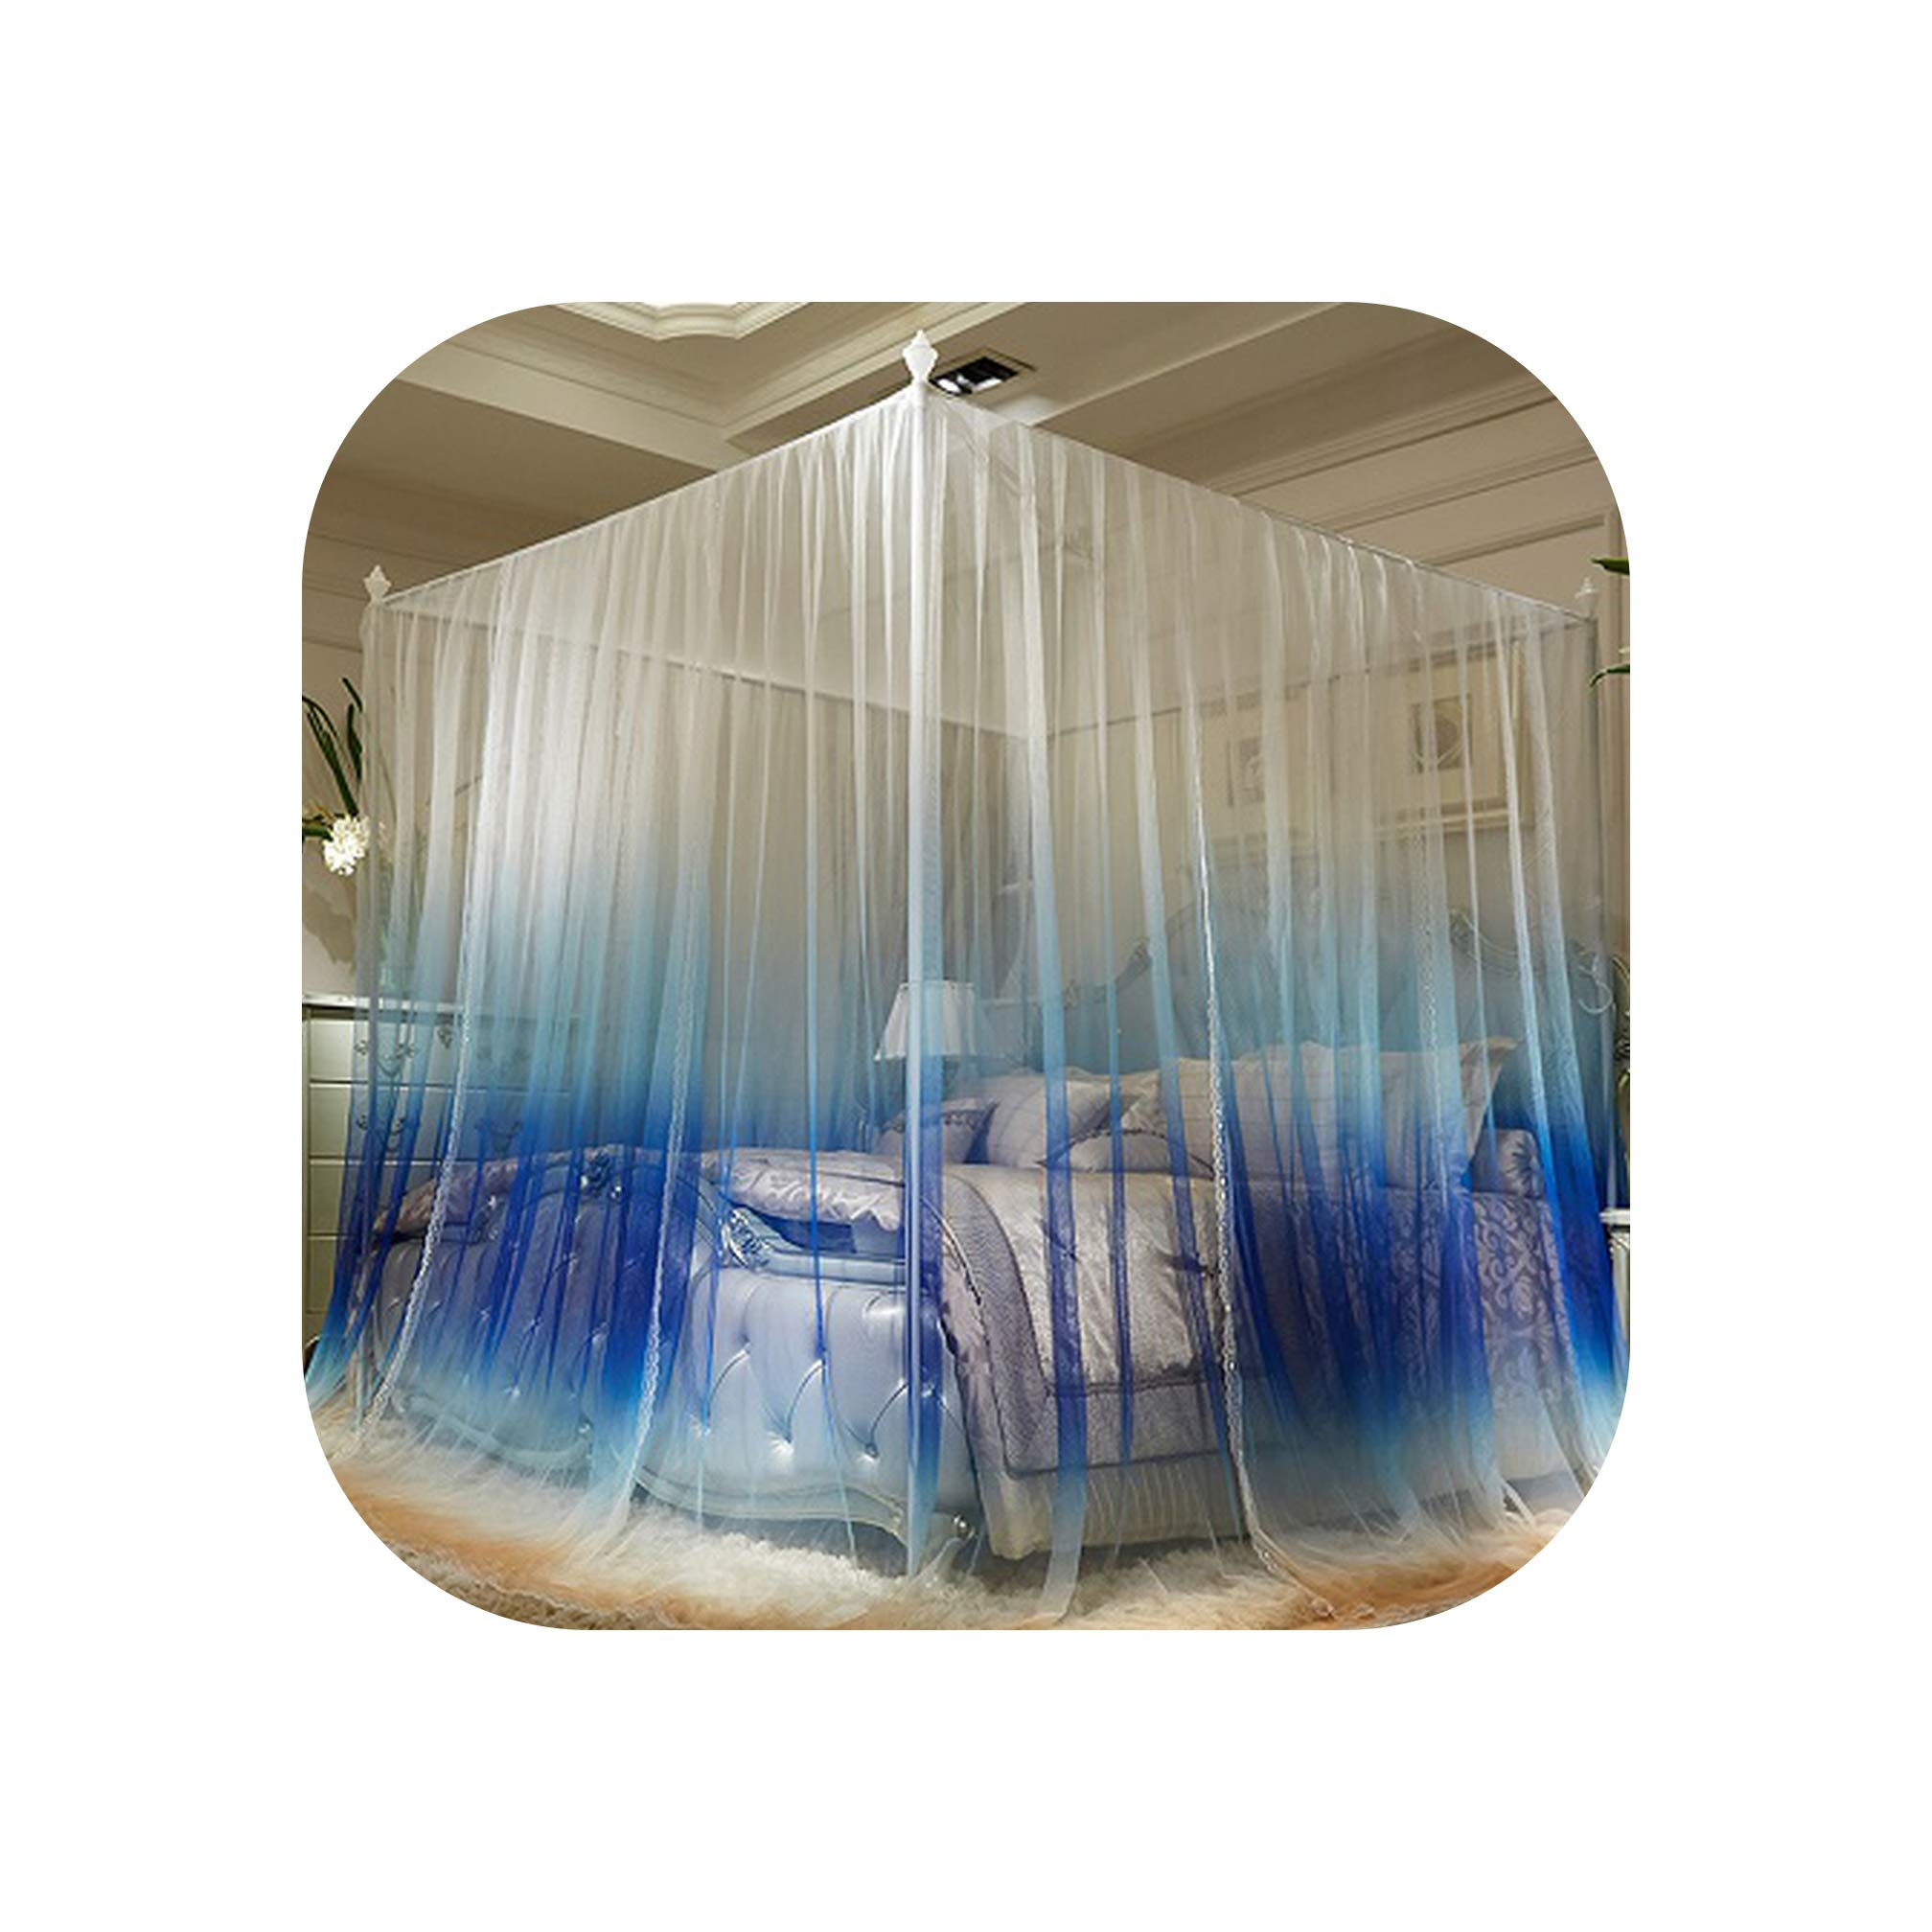 Gradient Green Blue Gray Orange Luxury Square Three Open Door Lace Mosquito Net 32mm Stainless Steel Mosquito Frame Bedding Set,3,200X220cm